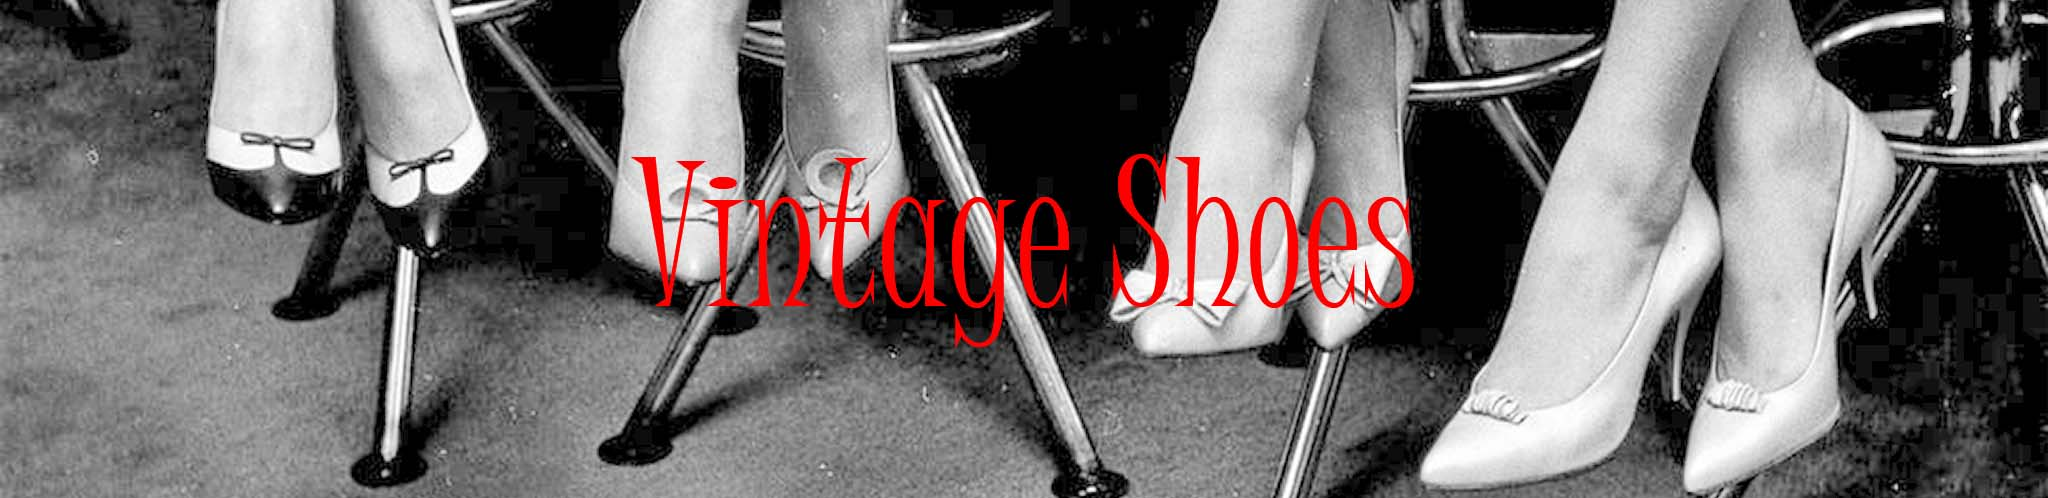 Vintage Shoes and Heels